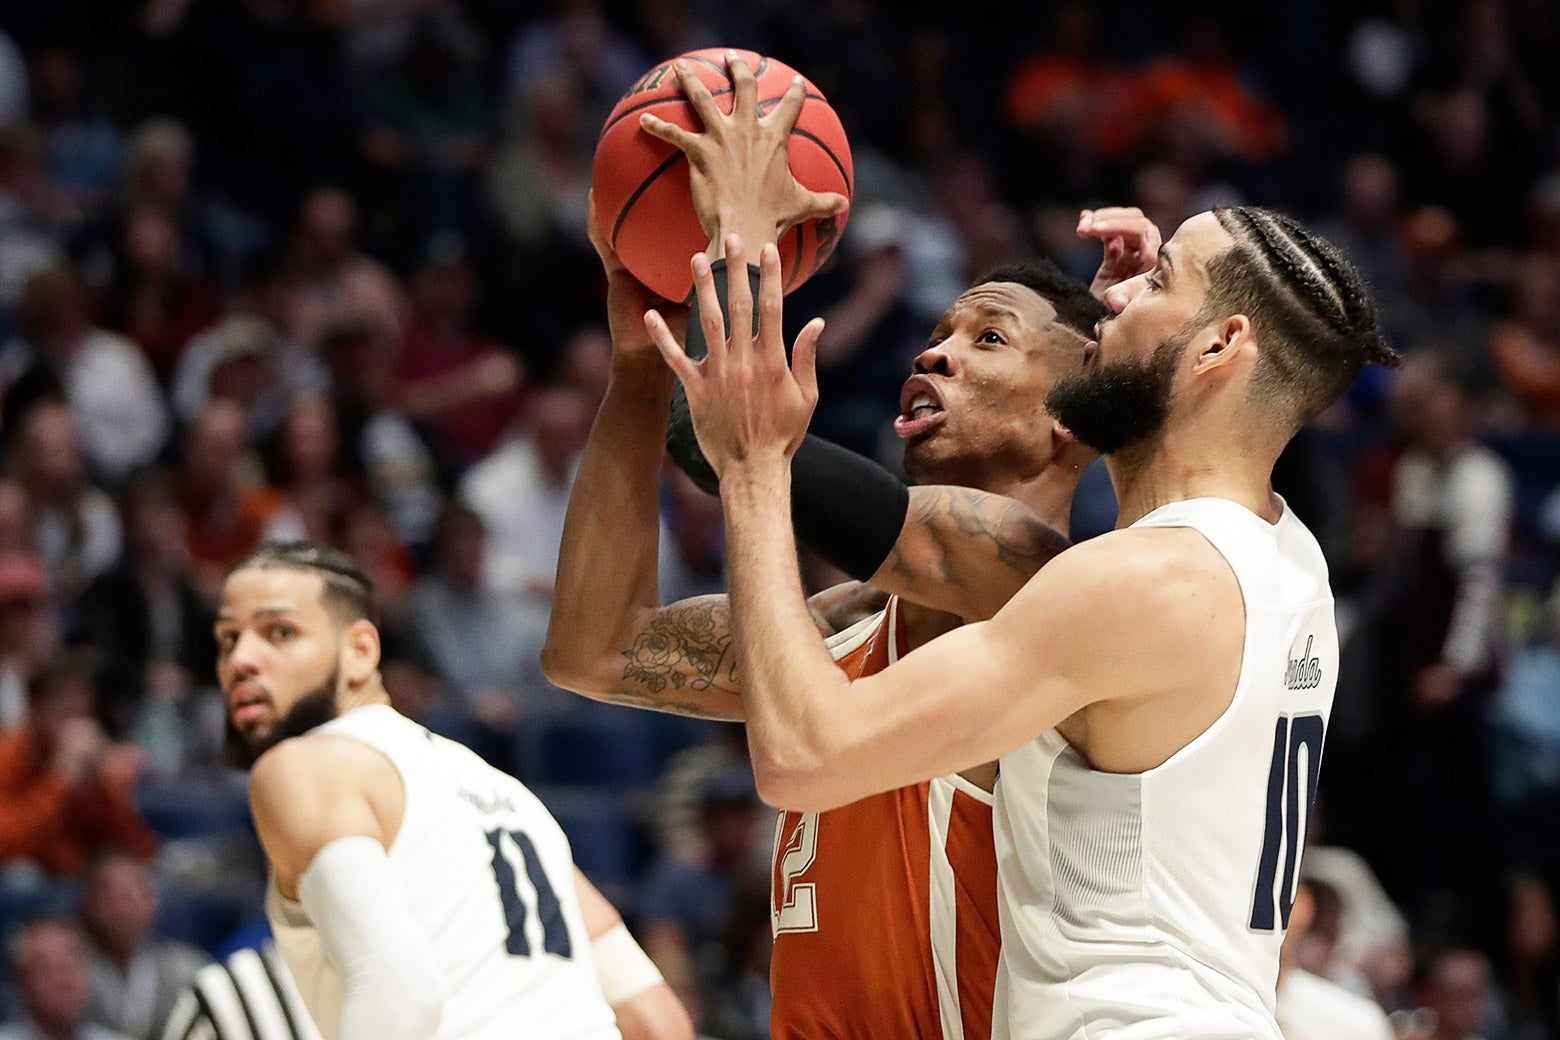 Texas guard Kerwin Roach II goes to the basket against Nevada forward Caleb Martin (10) in the second half of a first-round game of the NCAA college basketball tournament in Nashville, Tenn., Friday, March 16, 2018.